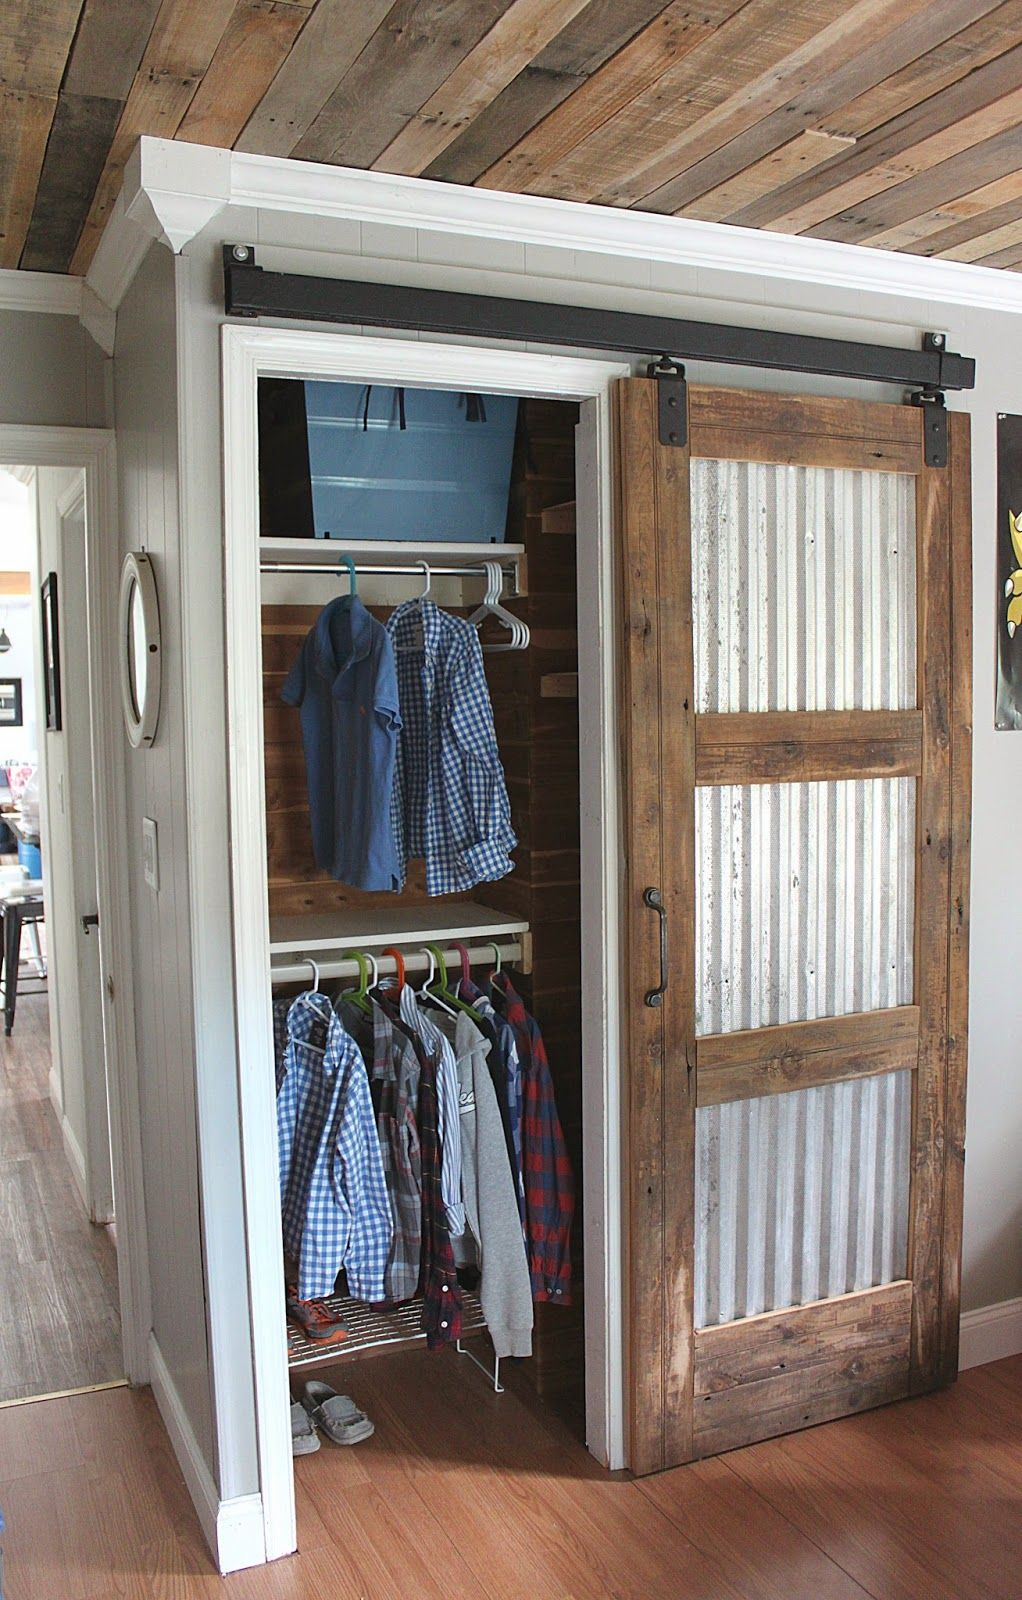 Cool sliding barn door made from reclaimed wood corrugated tin and salvaged hardware by maple leaves sycamore trees